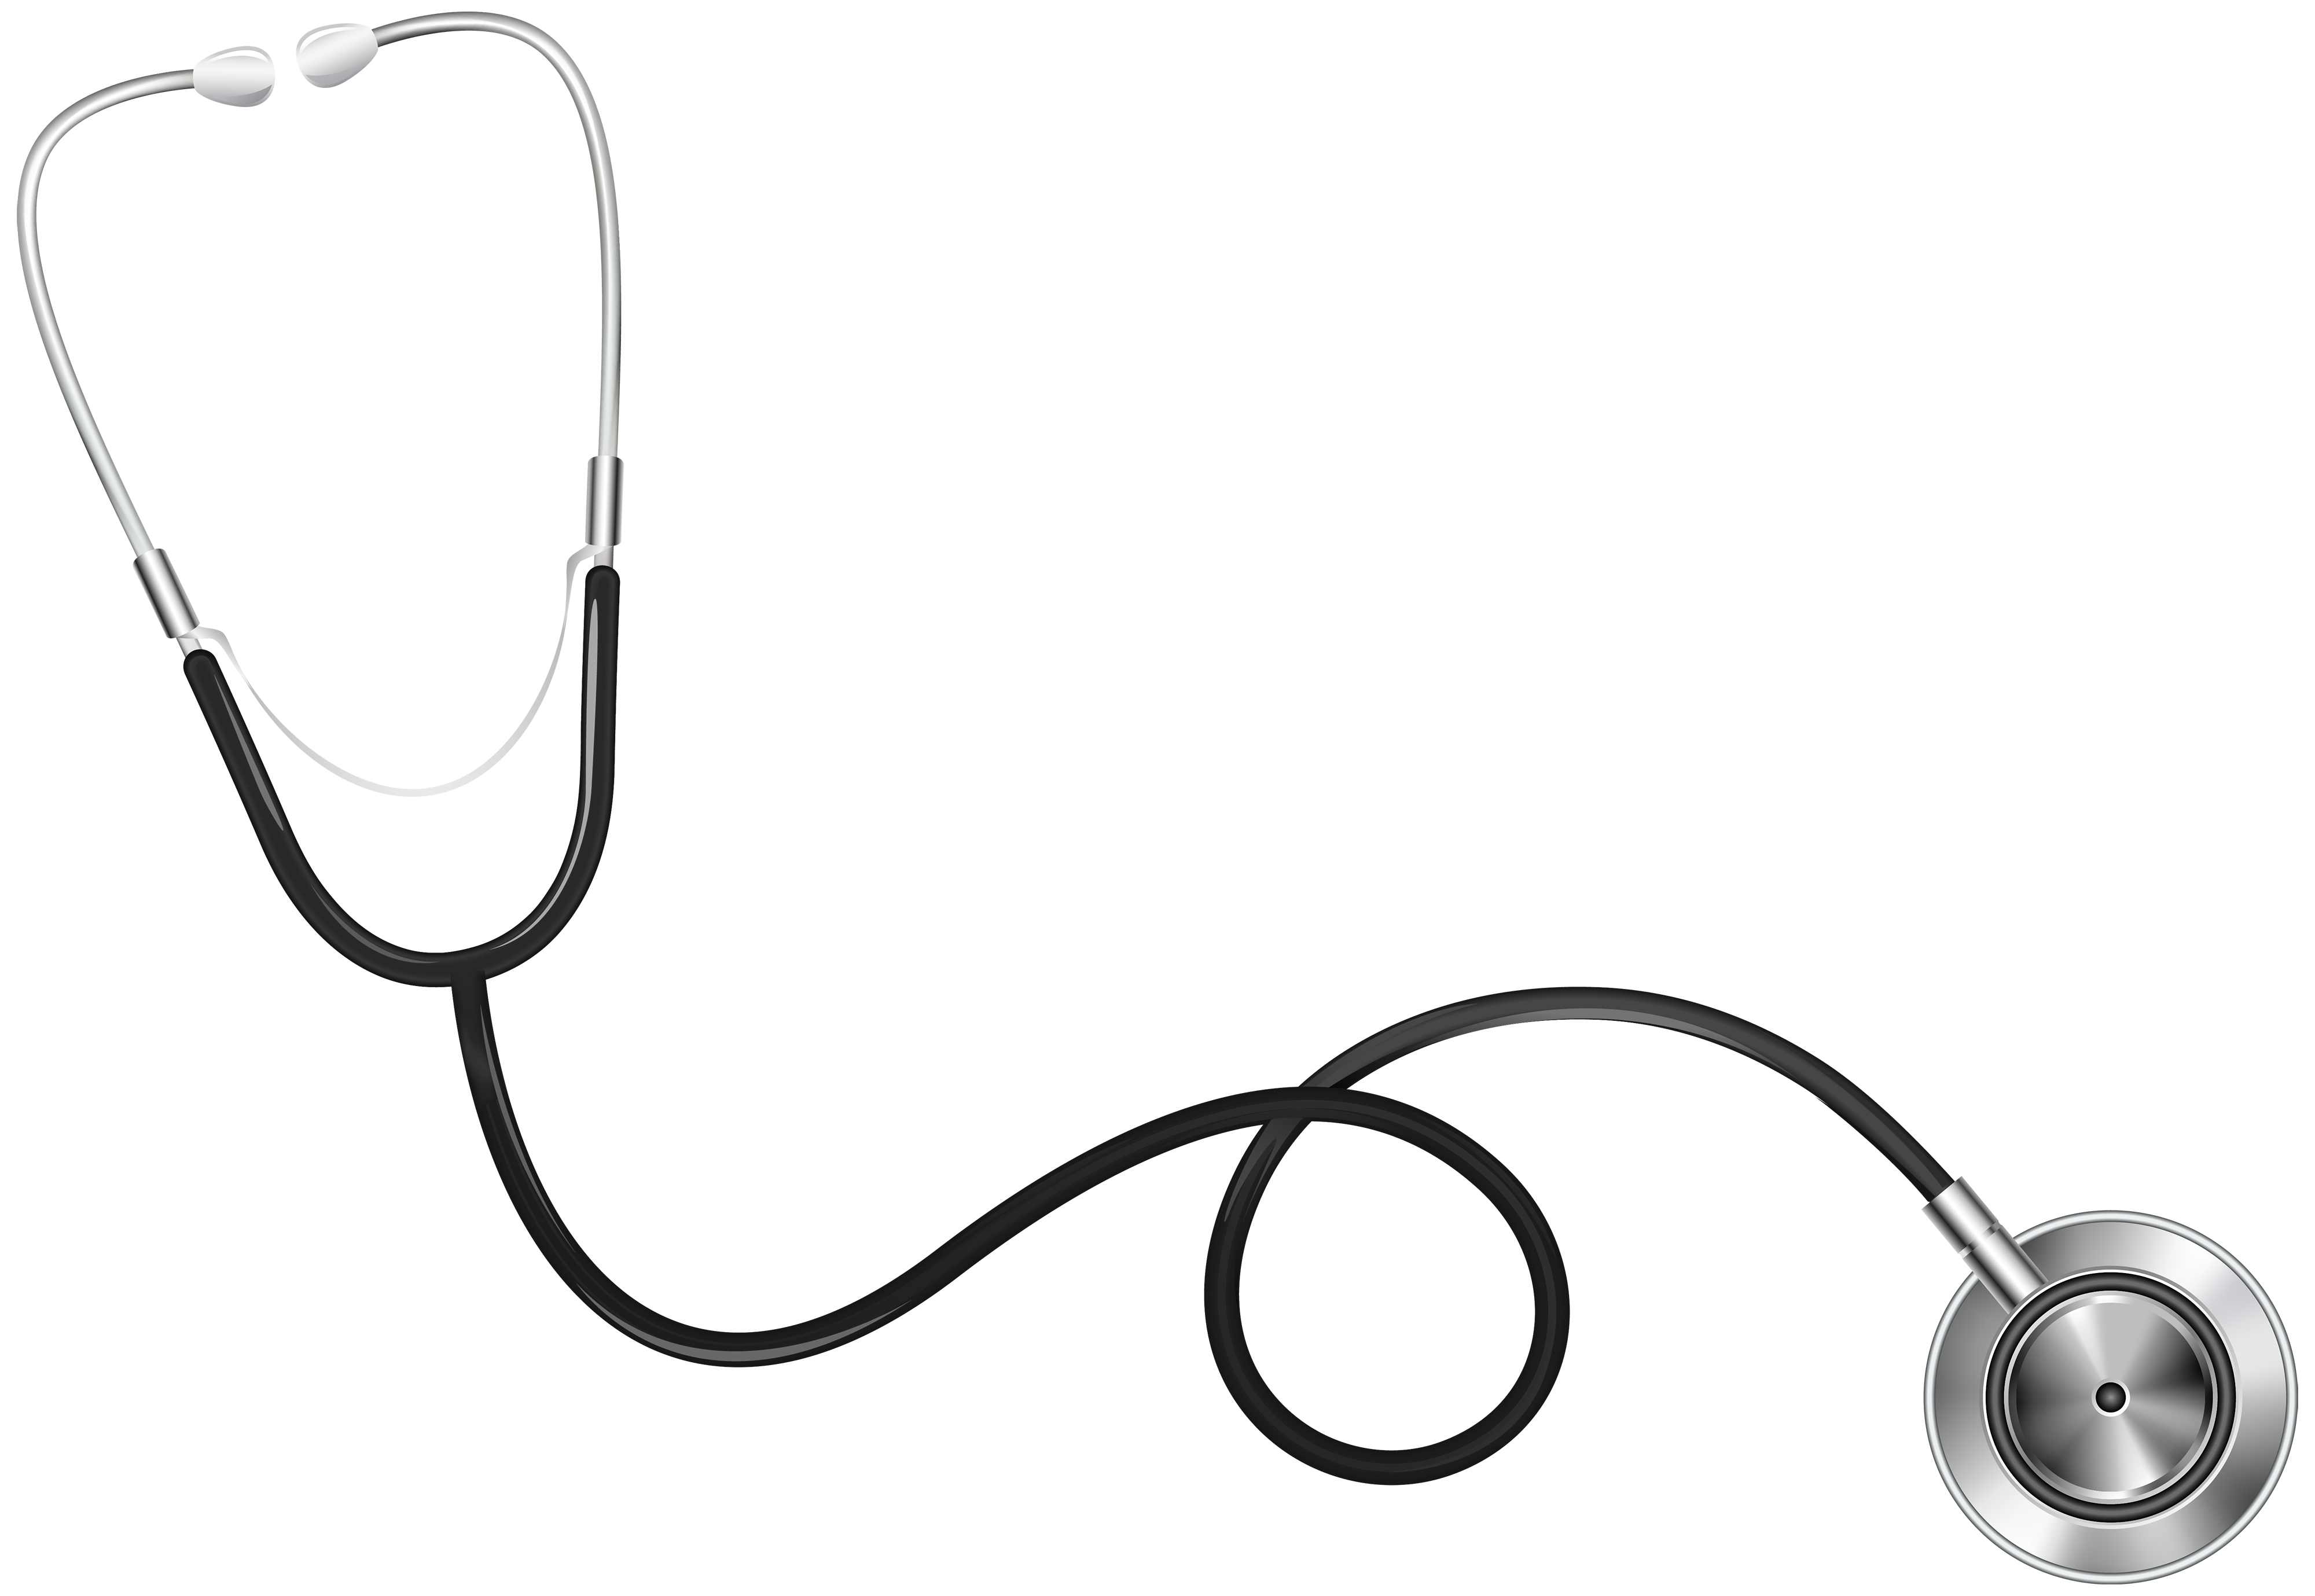 Stethoscope Png Clipart 363 Png 4000 2758 Doctors Stethoscope Clip Art Stethoscope